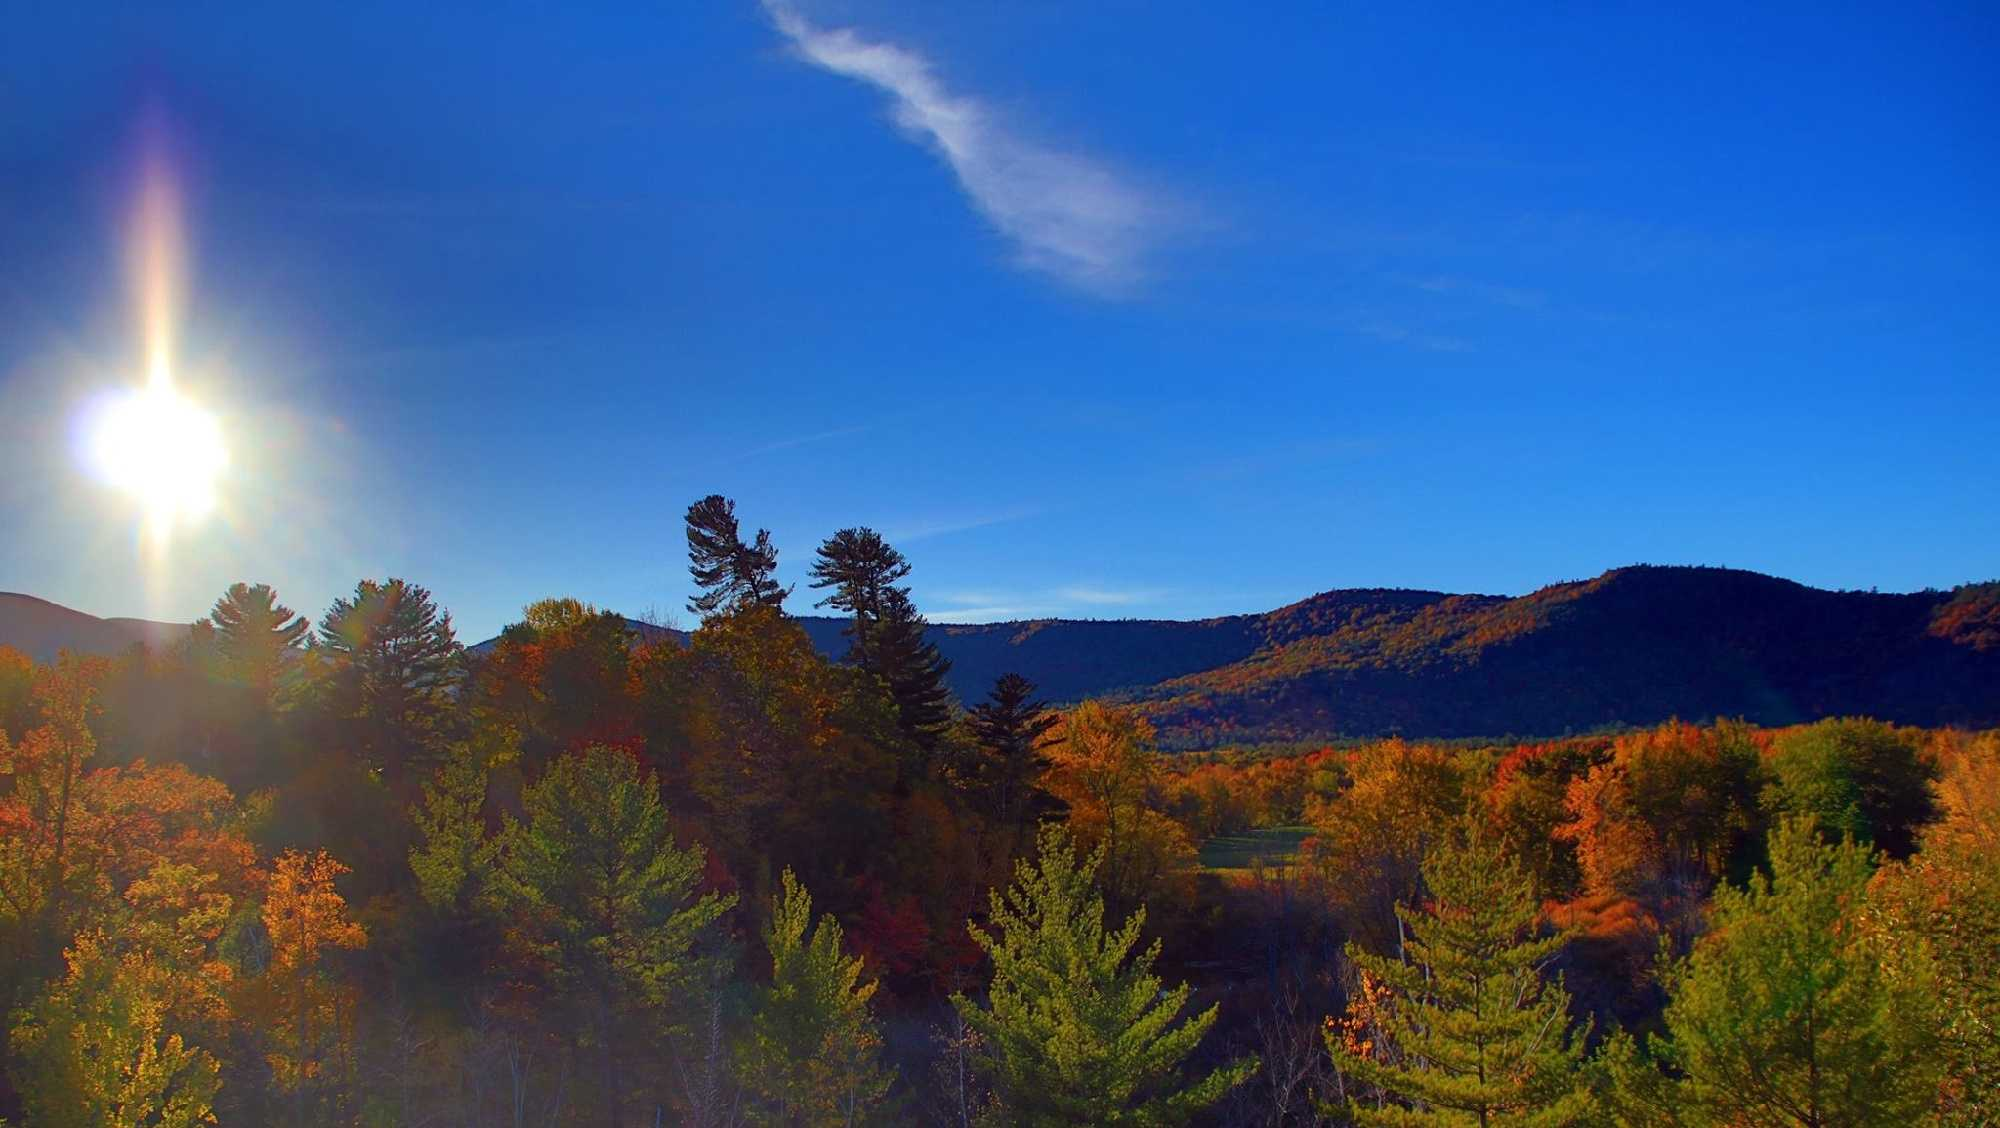 Beautiful fall foliage + blue skies + sunset = Incredibly peaceful moment.